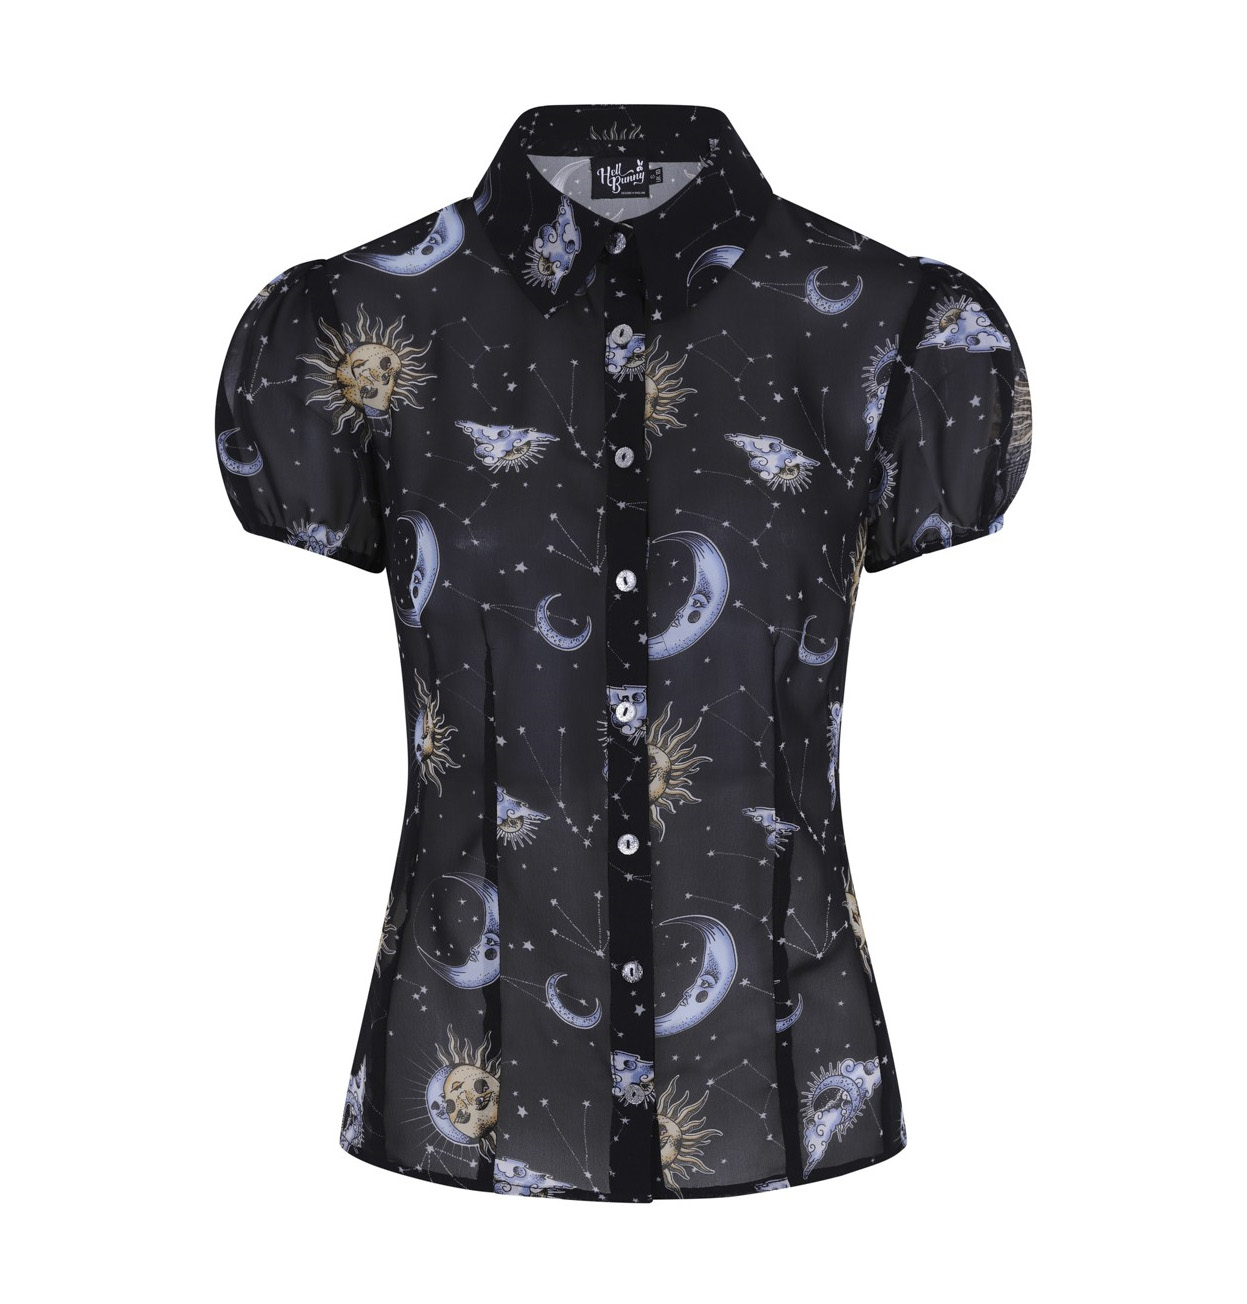 Hell-Bunny-50s-Shirt-Top-Gothic-Black-Sun-Moon-Stars-SOLARIS-Blouse-All-Sizes thumbnail 35